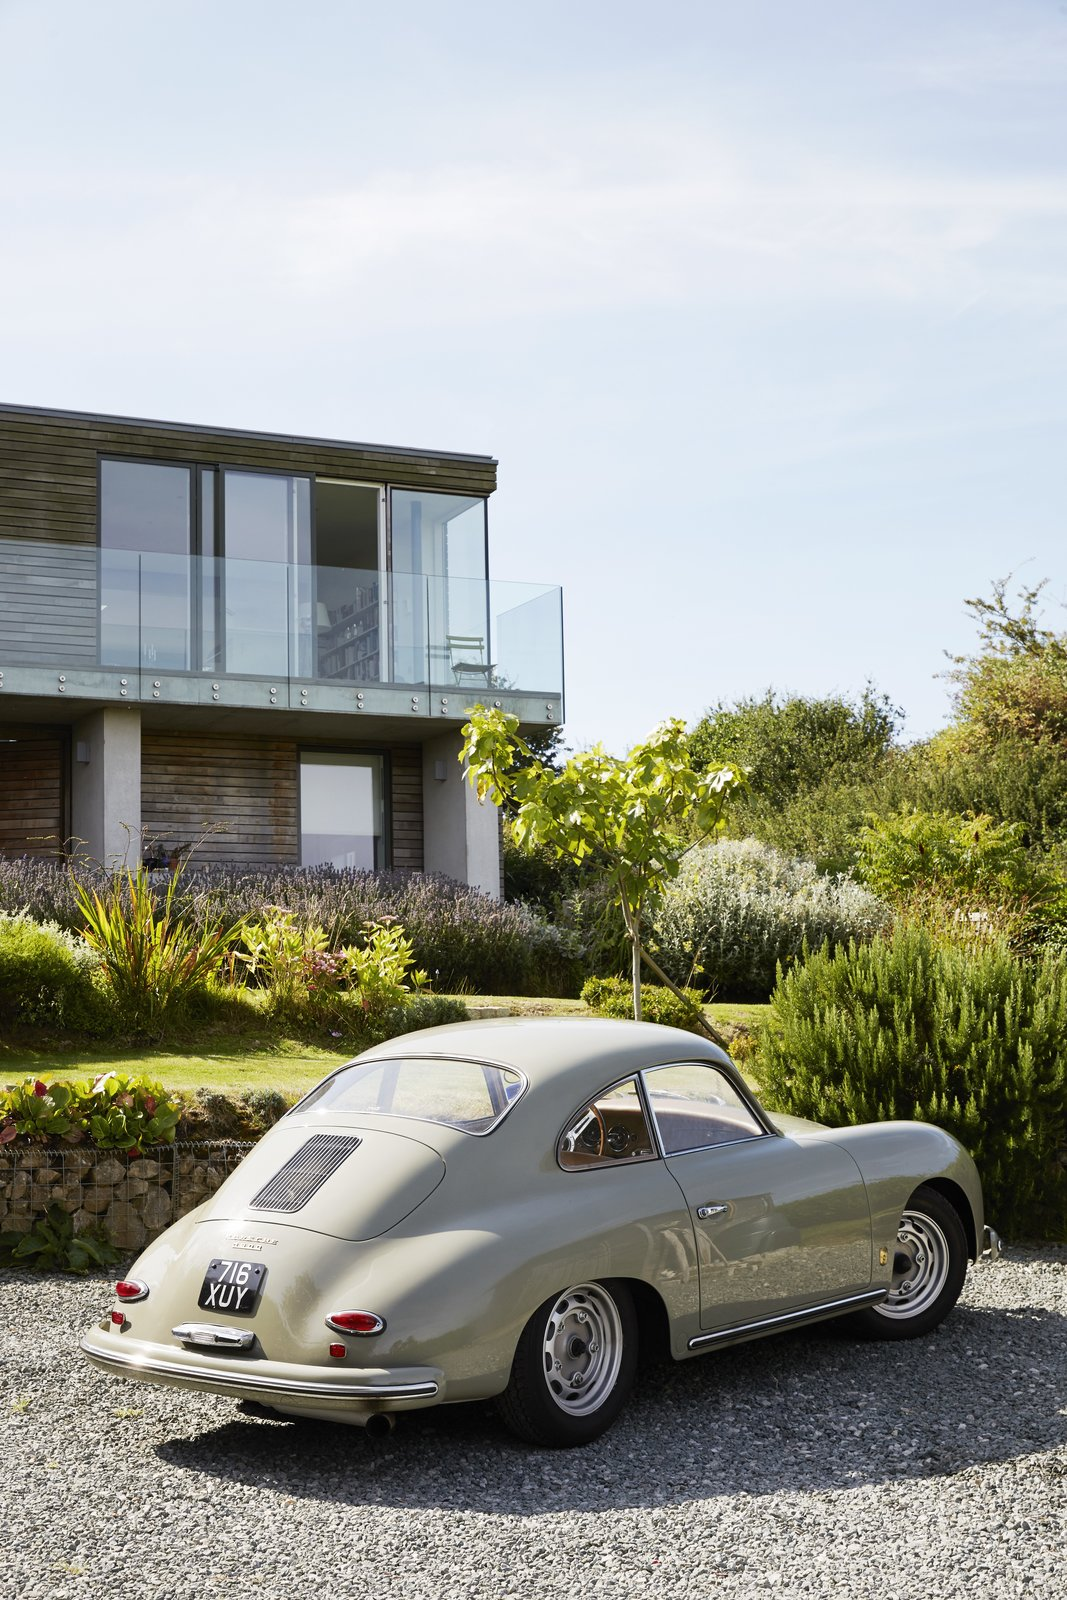 Nick's passion for midcentury design extends to cars. His 1959 Porsche 356A coupe is parked in the driveway.  Pett Level, England Dwell Magazine : November / December 2017 Tagged: Outdoor, Grass, Shrubs, Stone Patio, Porch, Deck, and Front Yard.  Photo 7 of 14 in Fall in Love With This British Architect's Colorful Weekend Retreat